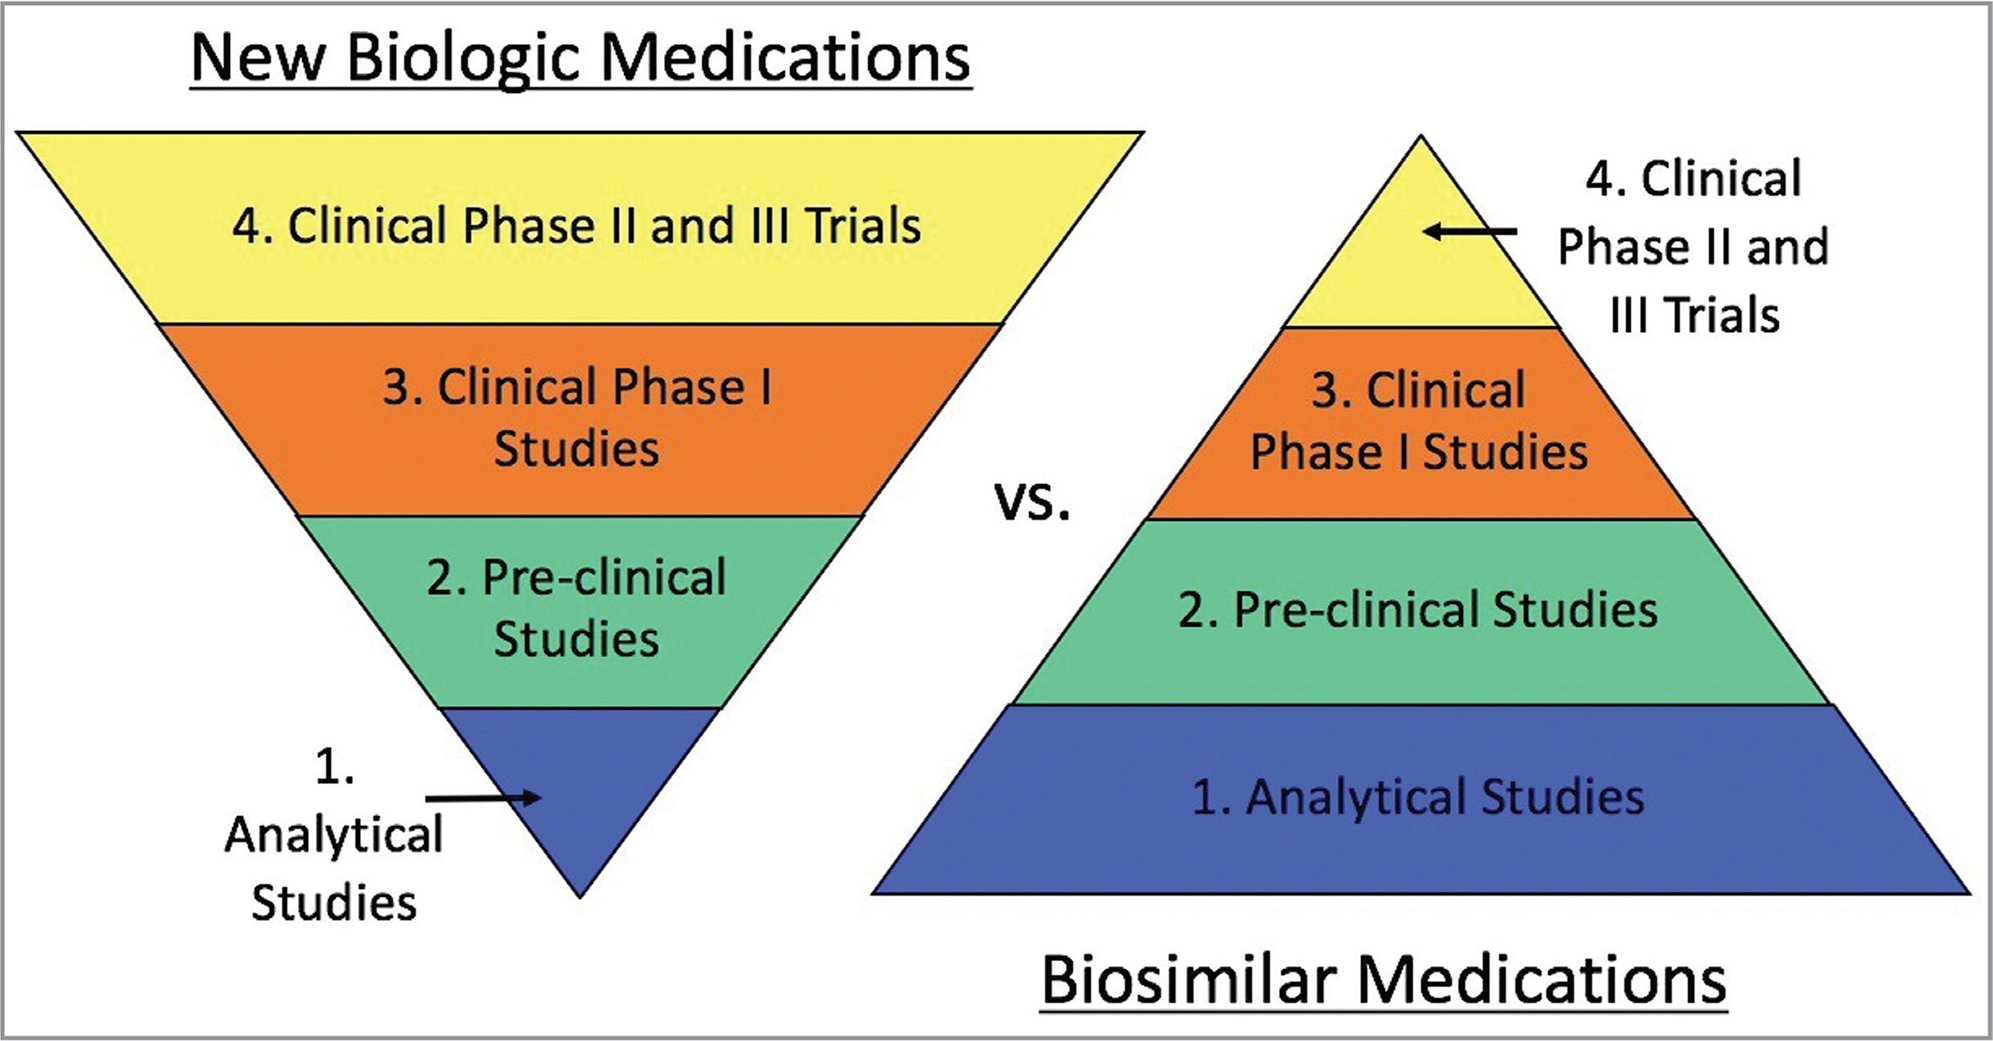 "The development of a new biologic medication requires significant time and funding to support multiple, large clinical trials to prove efficacy and safety. This is in contrast to the development of biosimilars, which focuses more on the analytical and preclinical studies to demonstrate that the biosimilar is in fact ""similar"" to the original molecule. Based on the understanding that similar molecules will behave similarly and produce similar results, there is a smaller focus on phase 2 and 3 clinical trials for biosimilars as compared to new biologics. Biosimilar development begins with extensive analytical and functional studies on multiple batches of the original biologic medication. Through reverse engineering, a biosimilar product is created, and its manufacturing process is perfected to produce highly similar medication in each batch. Preclinical functional studies are then performed to verify the same mechanism of action followed by phase 1 pharmacokinetic and pharmacodynamic studies in humans to determine bioequivalence. Lastly, phase 3 clinical studies are done to confirm safety and efficacy.5"